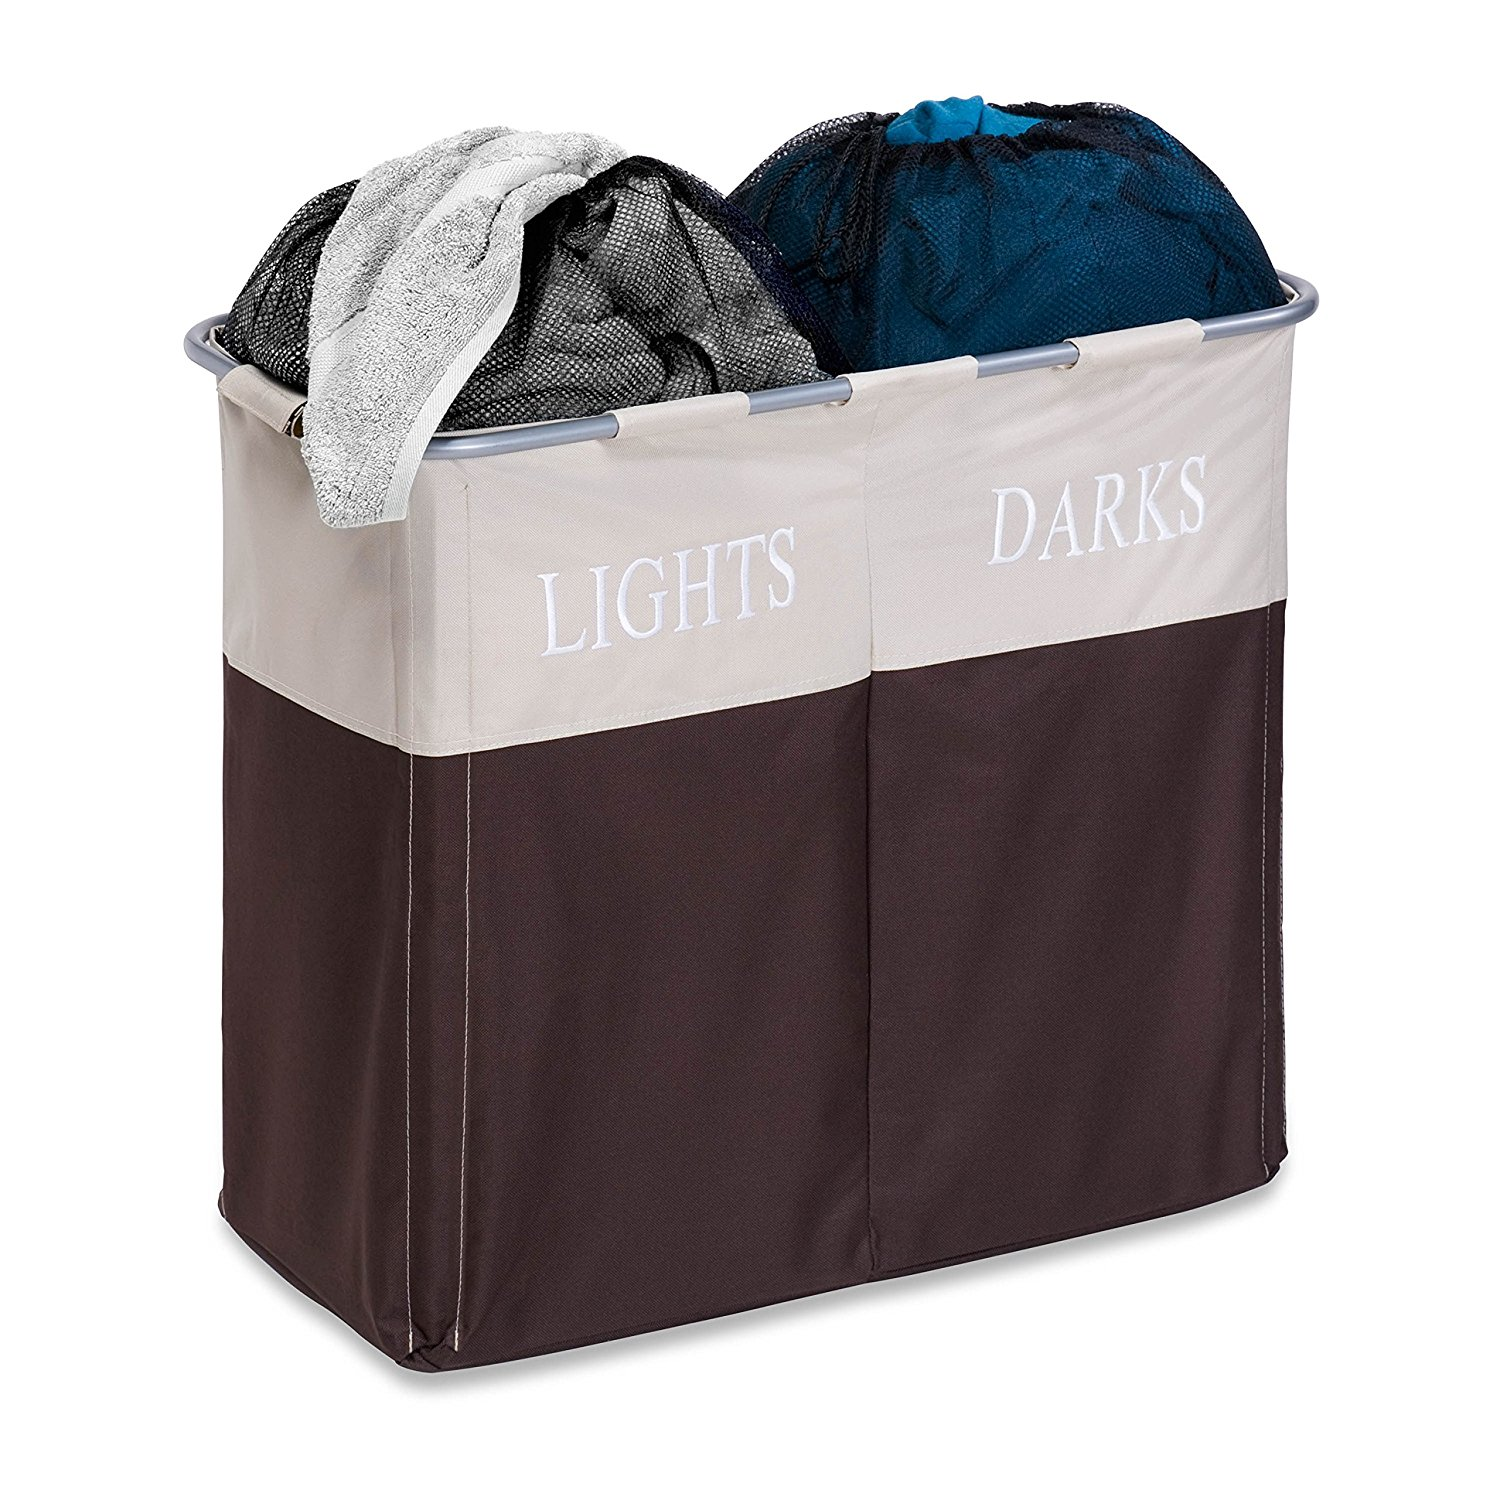 honey-can-do dual compartment lights and darks hamper, dual sorting hamper, best laundry hampers for nursery, laundry hampers for nursery, neutral laundry hamper, best laundry hamper, stylish laundry hamper, affordable laundry hamper, best nursery hampers, nursery hampers